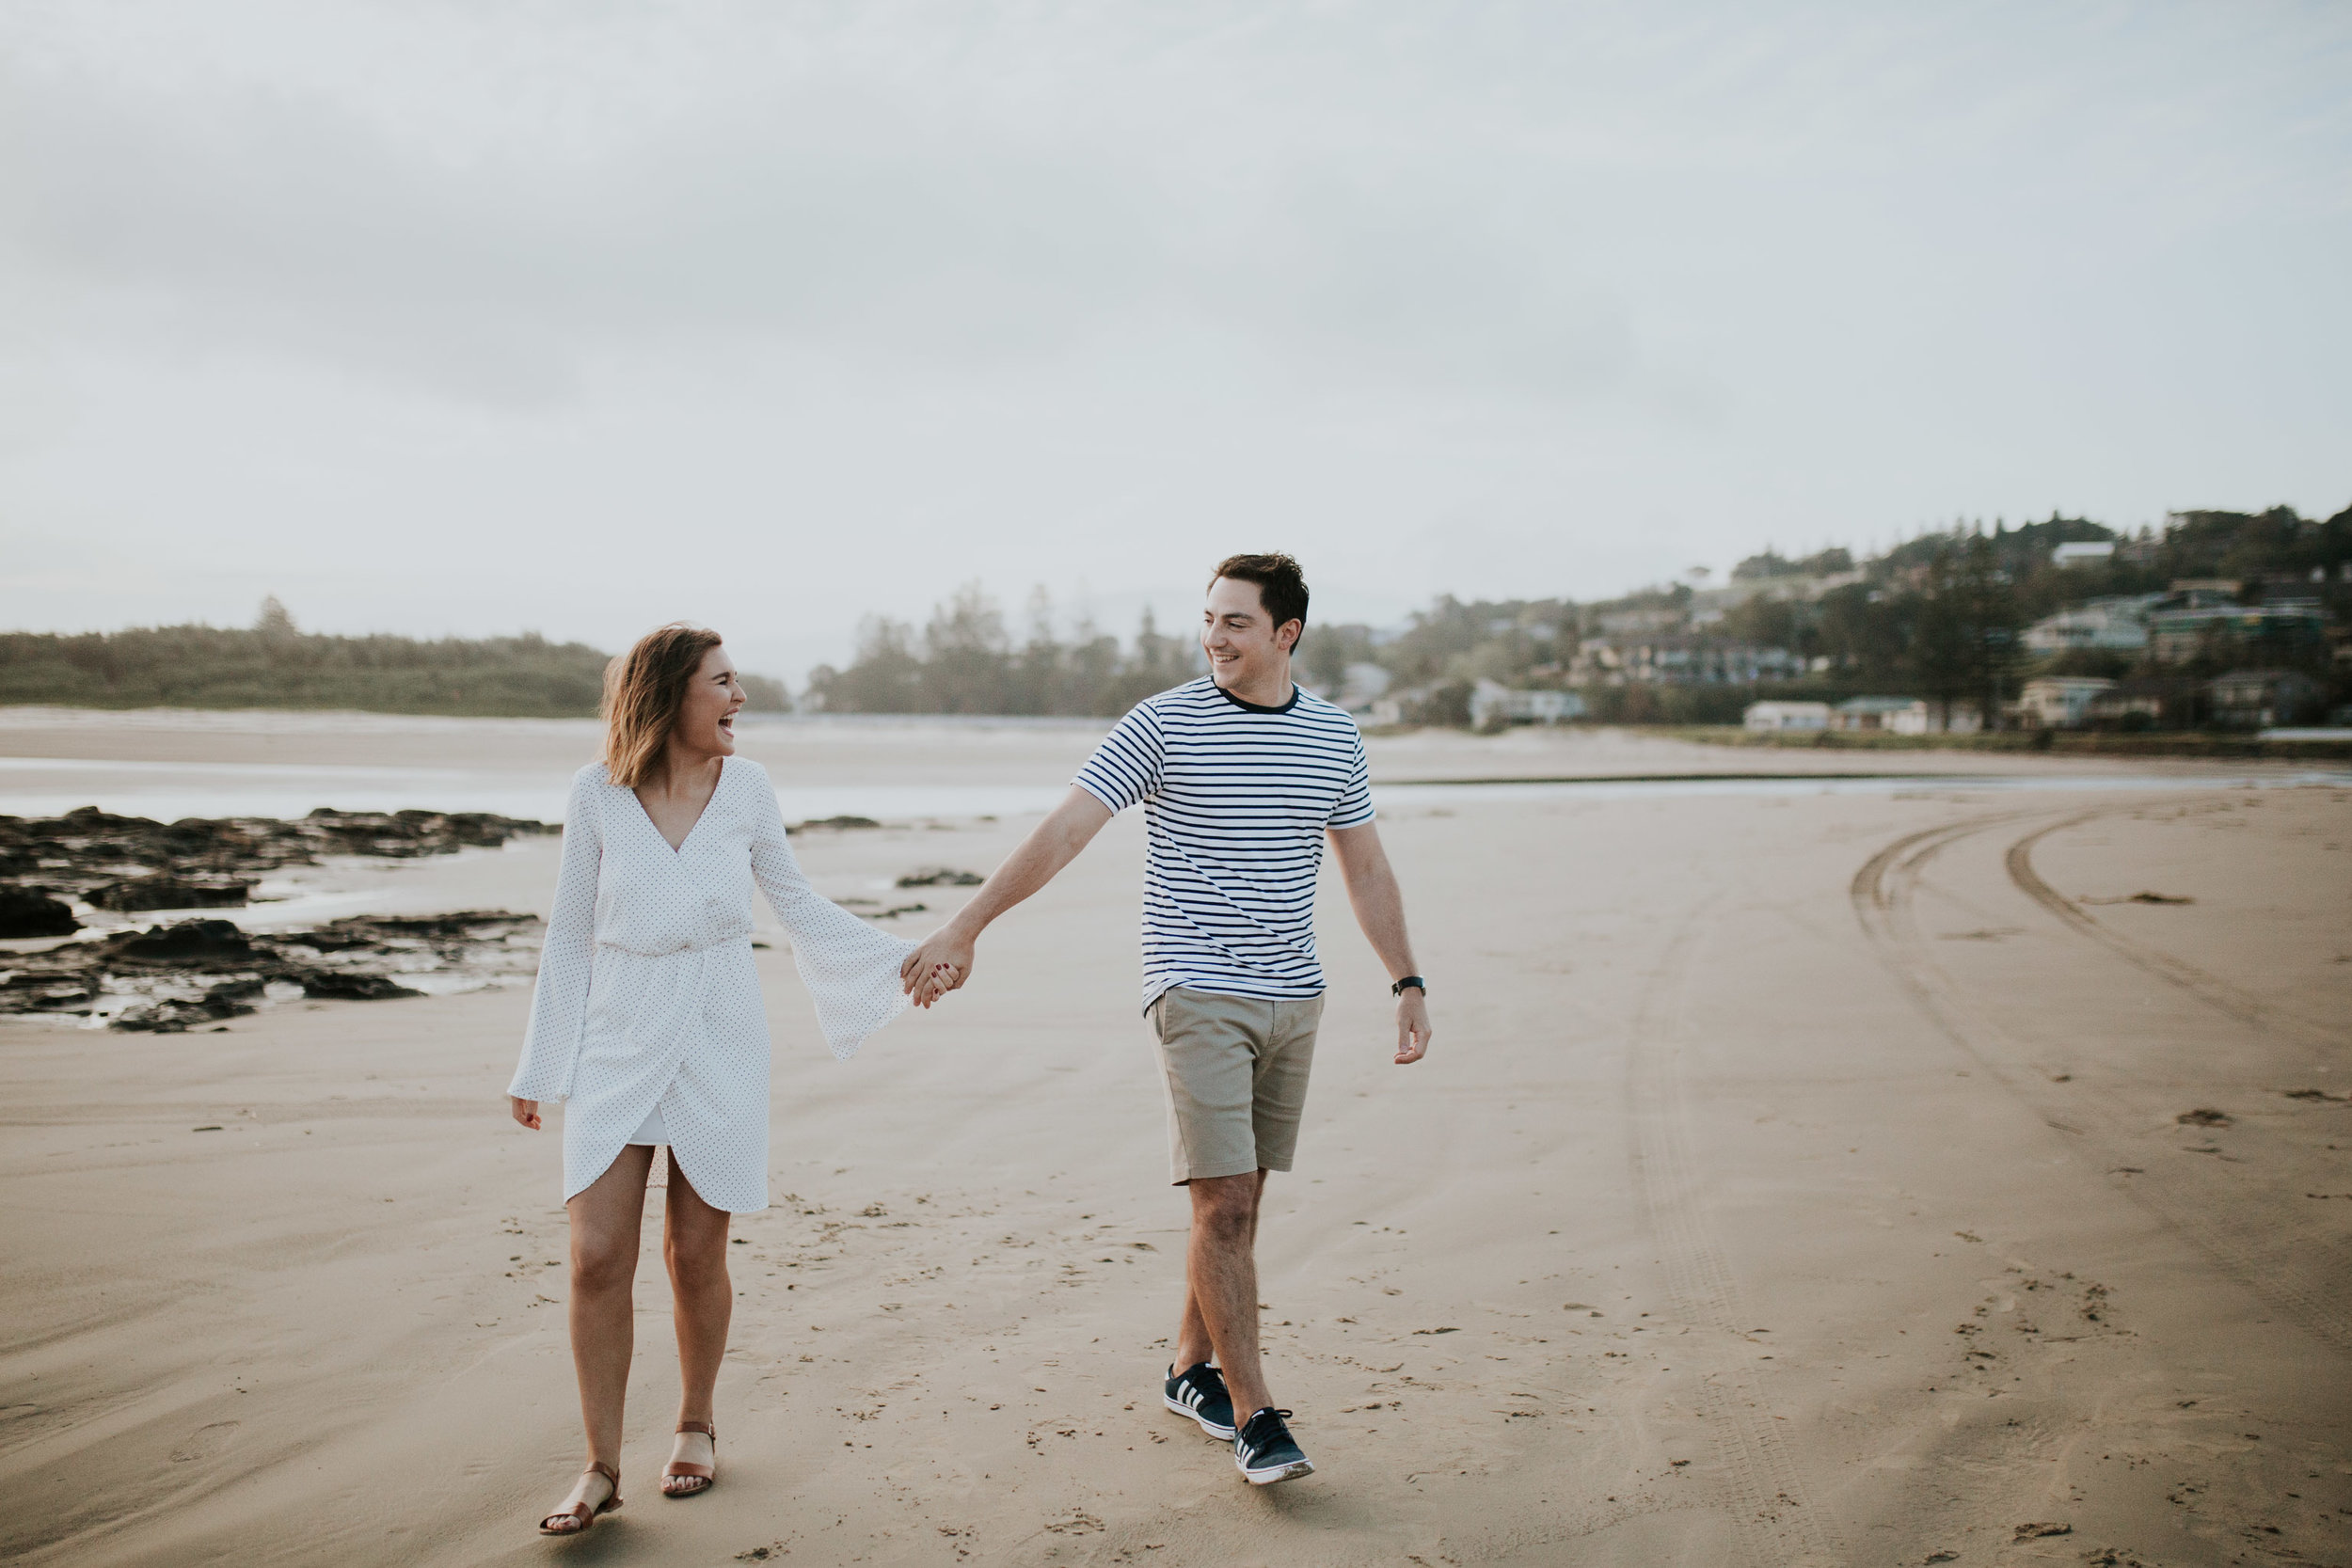 Kristen+Daniel+Engagement+Session+Portraits+Kiama+Beach-42.jpg